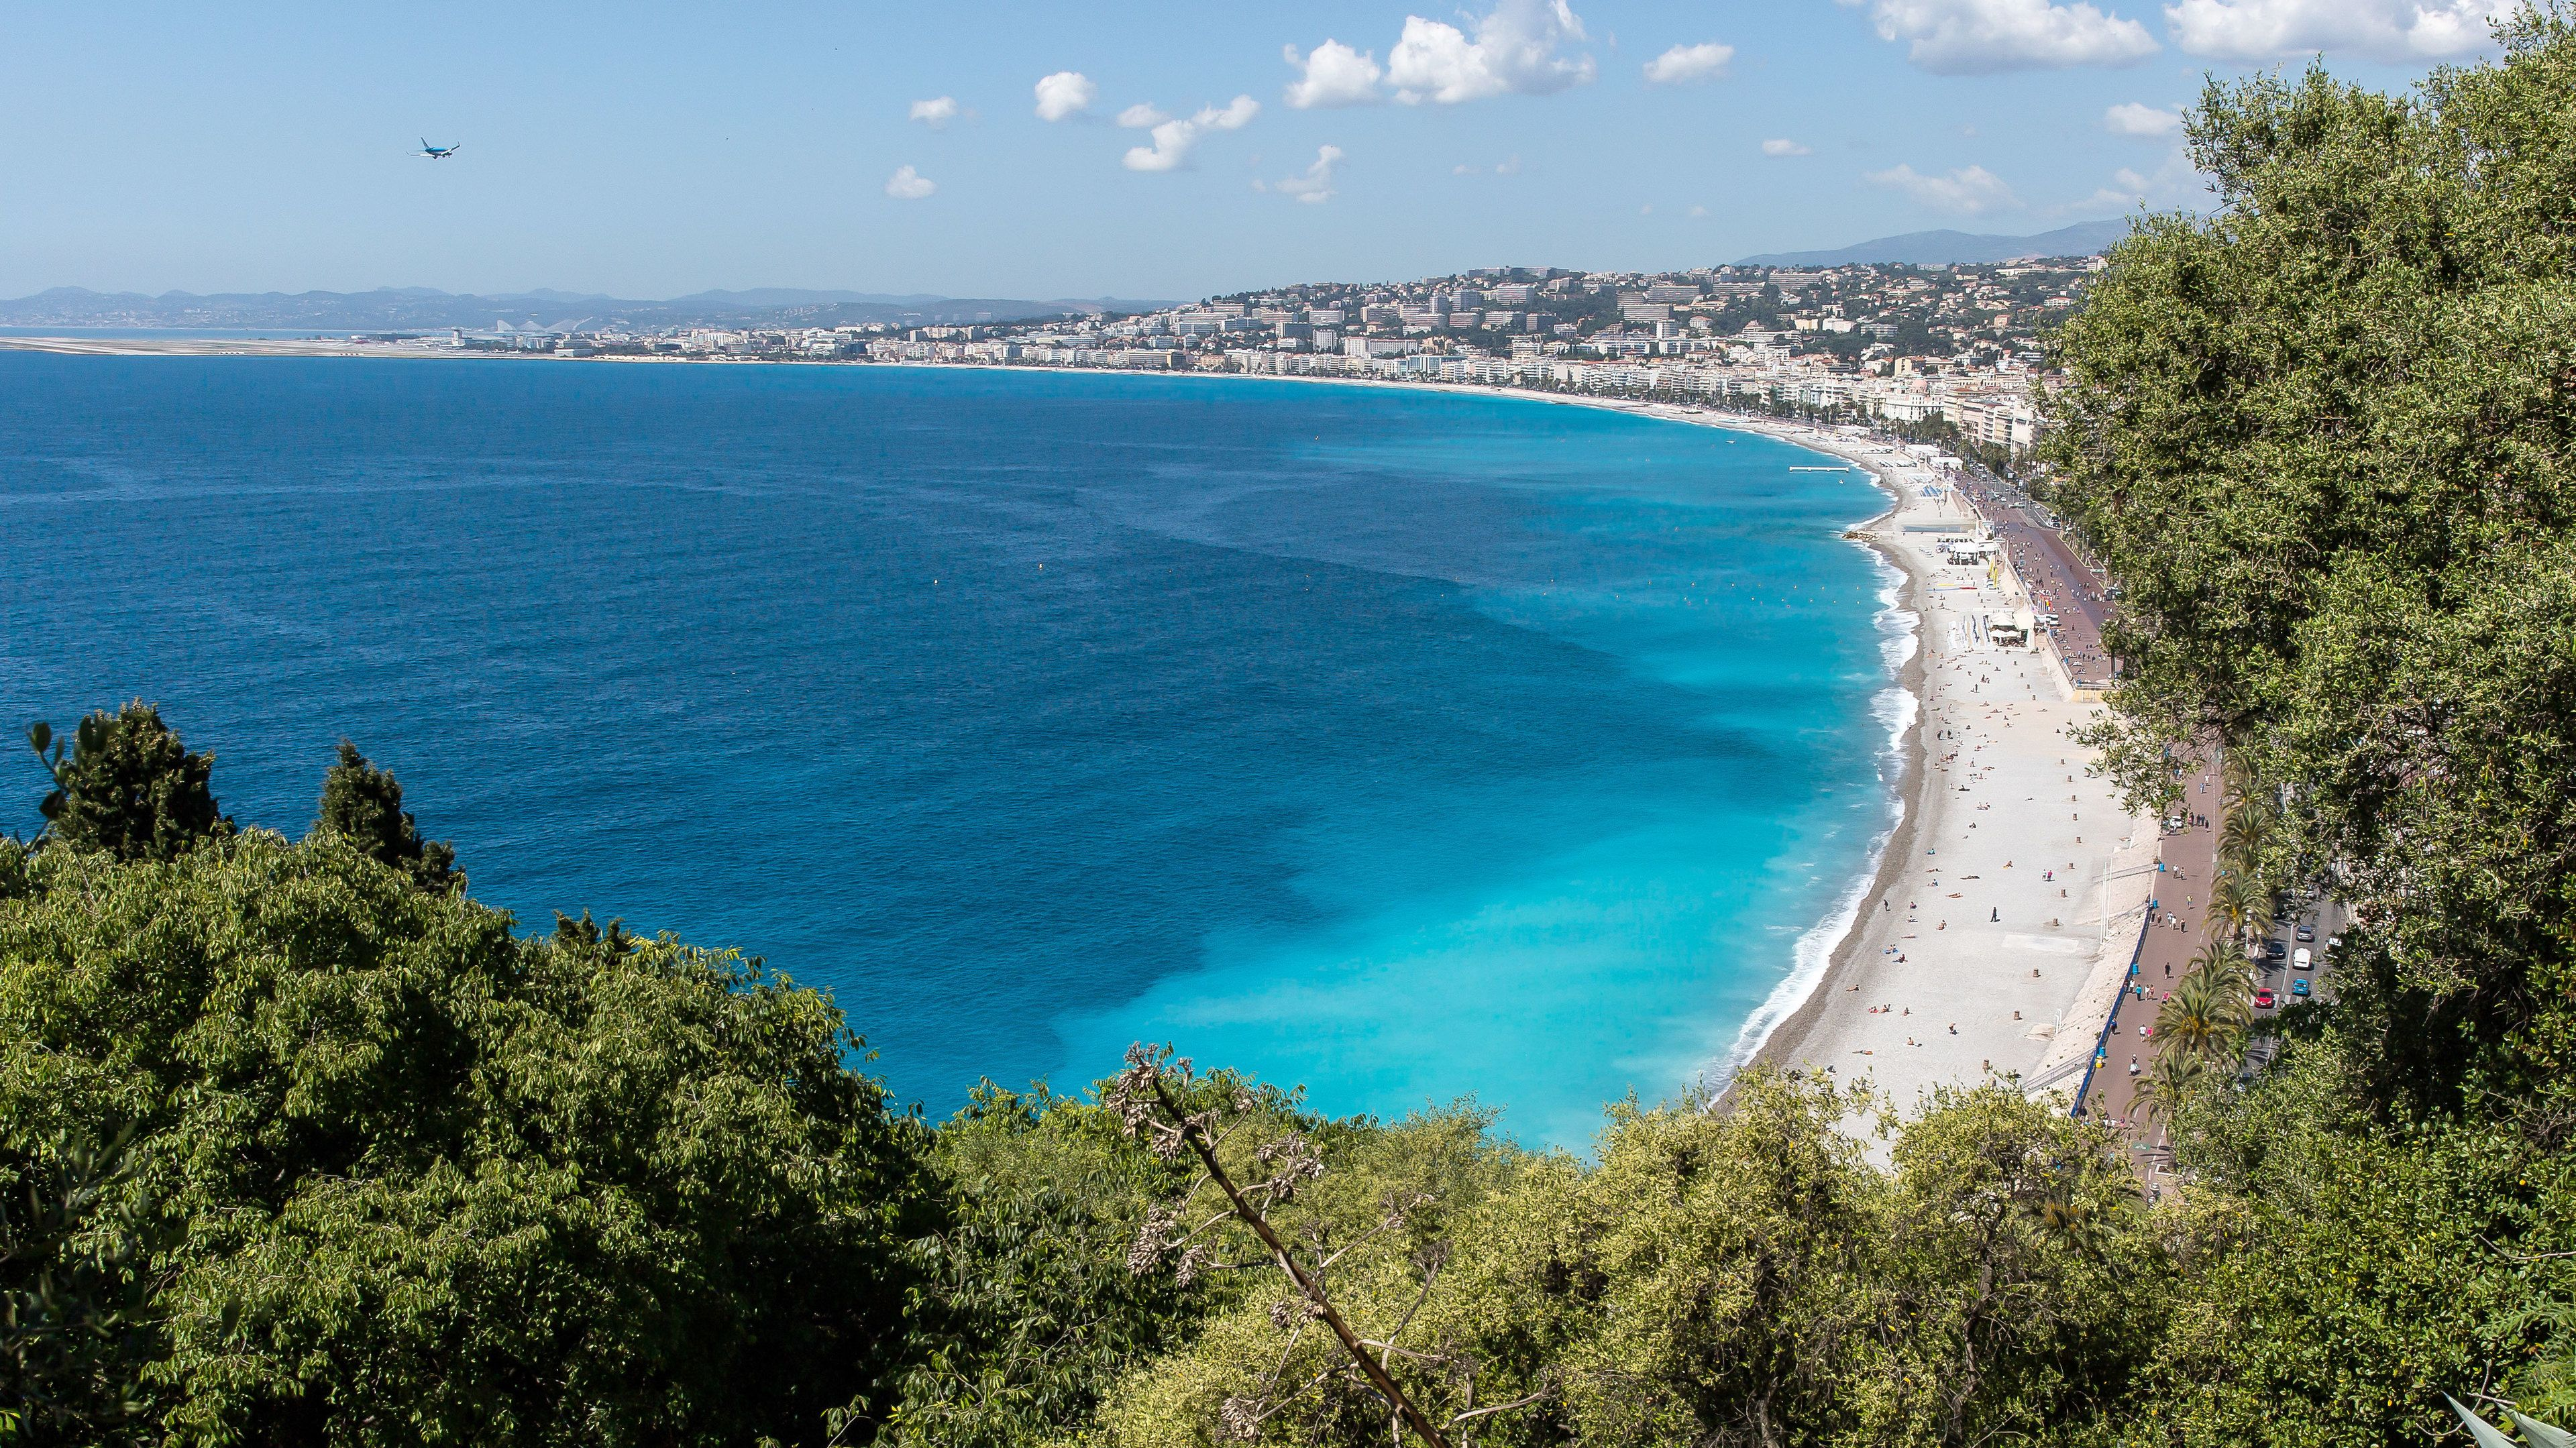 Panoramic view of the French Riviera